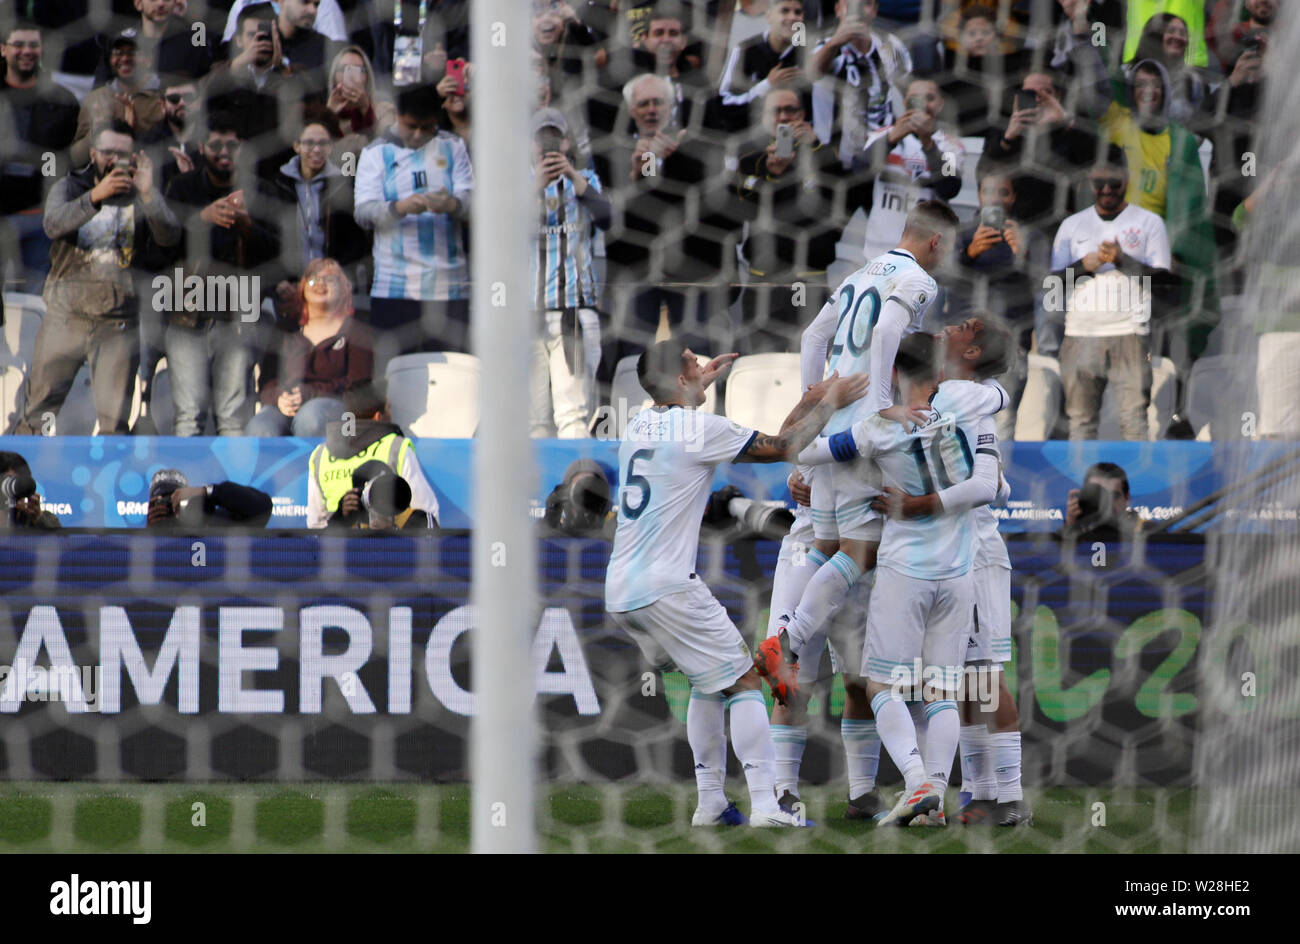 Sao Paulo, Brazil. 6th July, 2019. Argentina's players celebrate scoring during the 3rd place match of Copa America 2019 between Argentina and Chile in Sao Paulo, Brazil, July 6, 2019. Credit: Rahel Patrasso/Xinhua/Alamy Live News - Stock Image